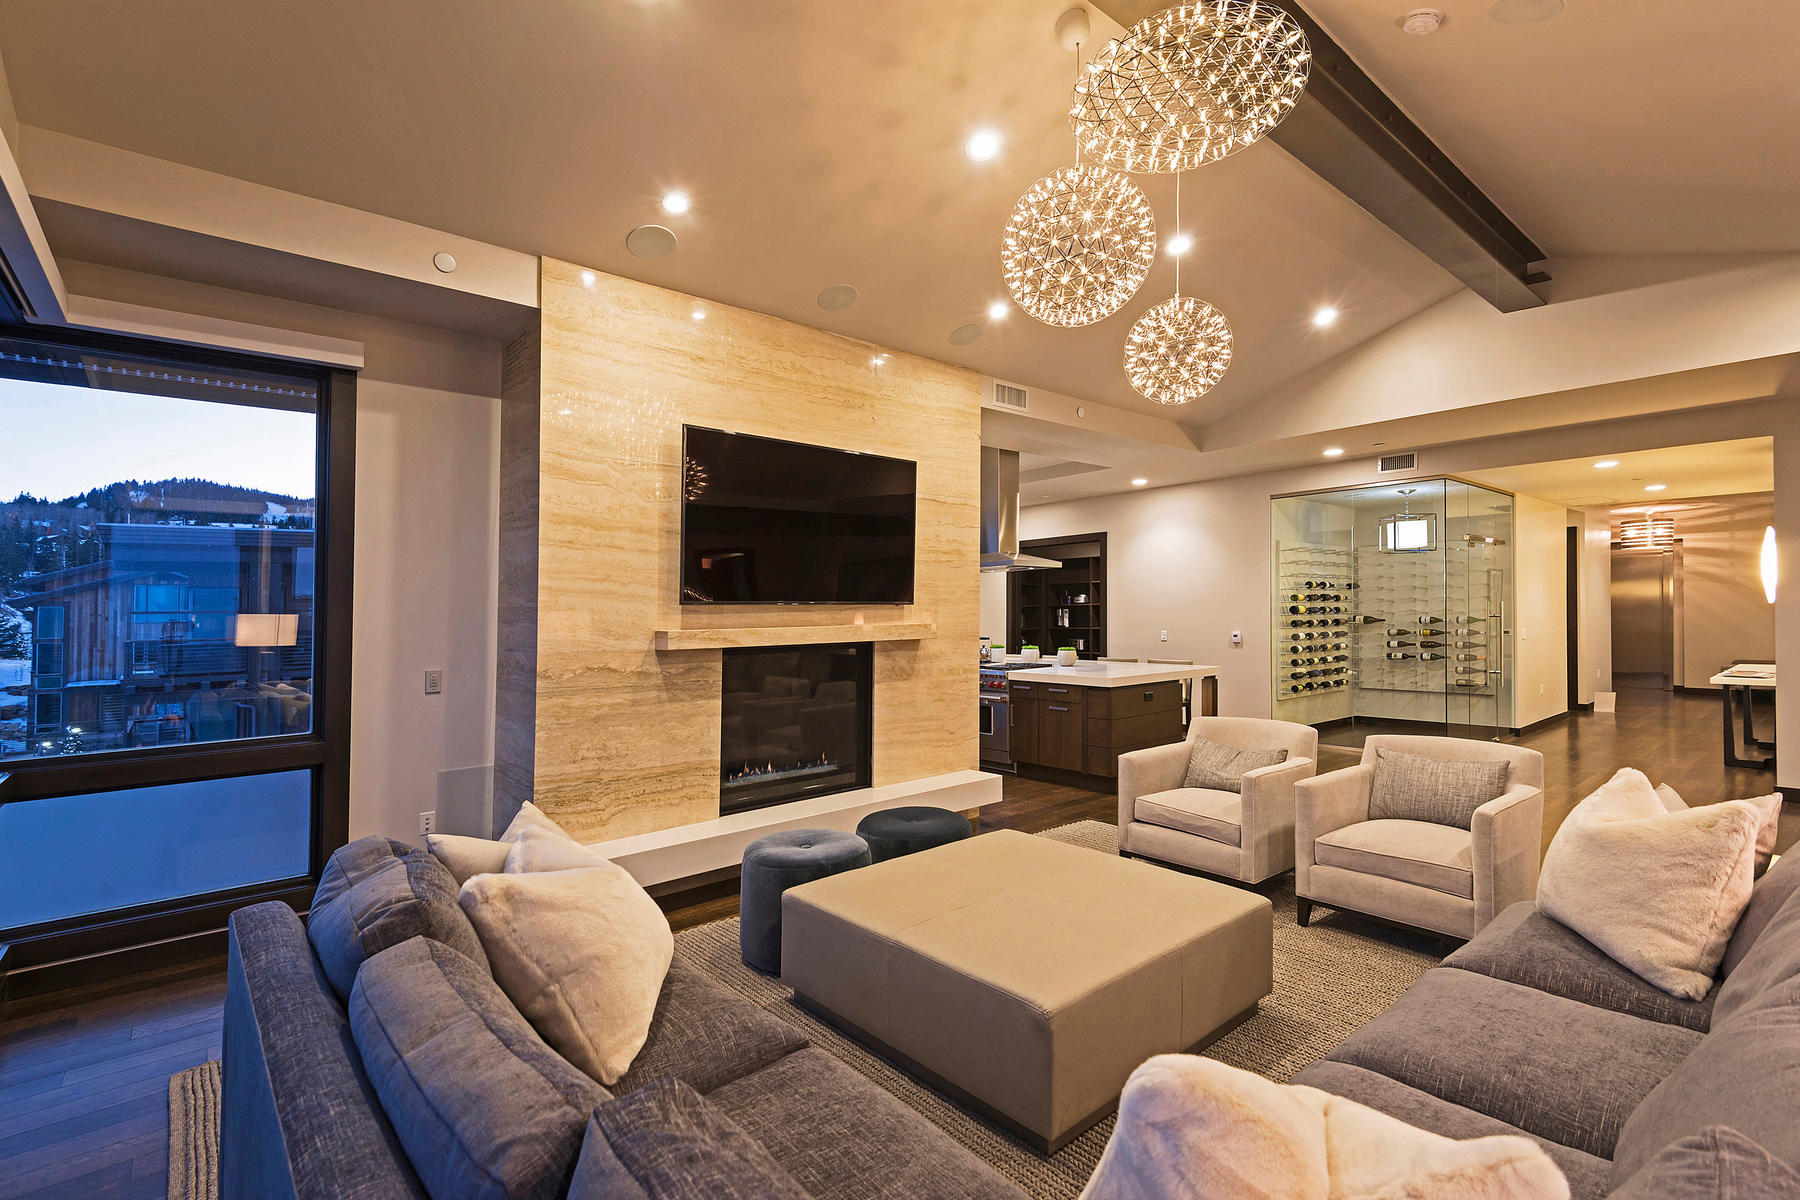 Additional photo for property listing at Brand New Turn-Key Ski-in/Ski-out Penthouse at Deer Valley 7101 Stein Cir #621 帕克城, 犹他州 84060 美国